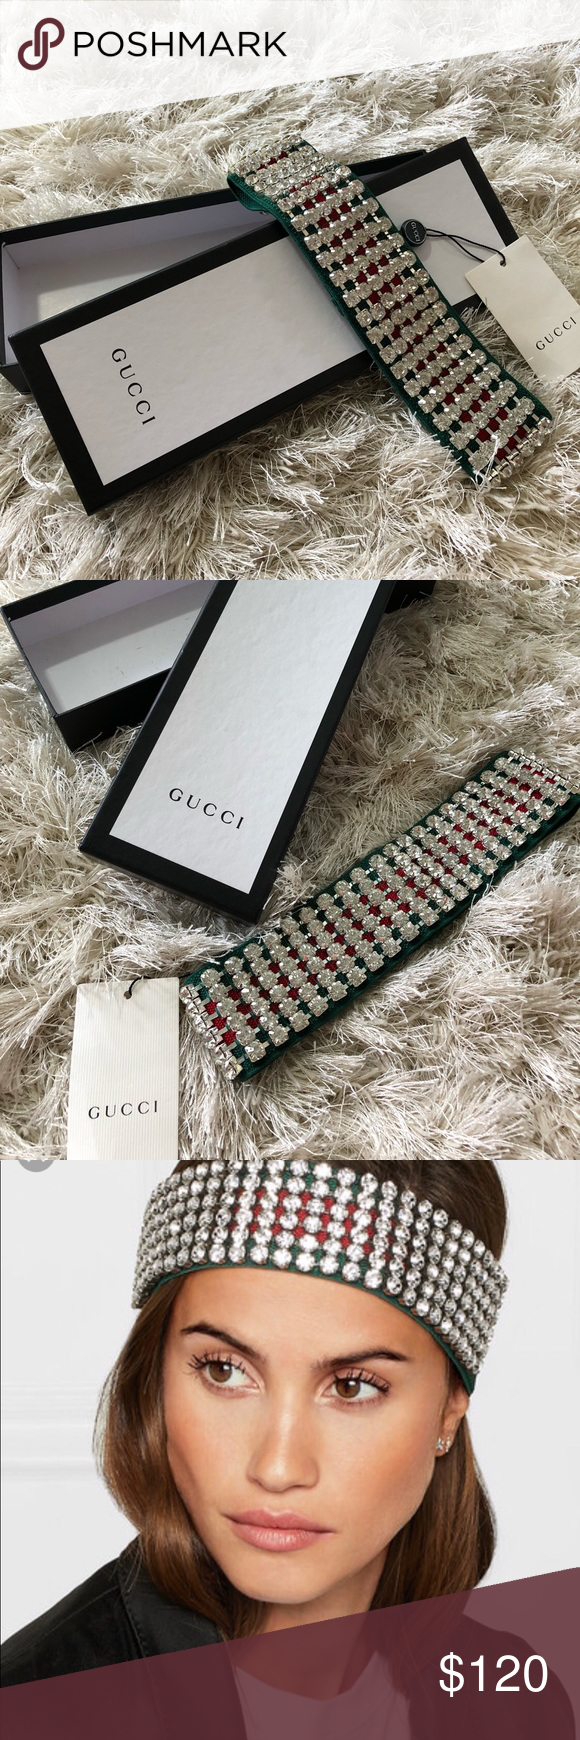 402268c7ff8 Gucci Headband Crystal Gucci Web Stripes Color Stretchy headband Brand new with  tags and box Gucci